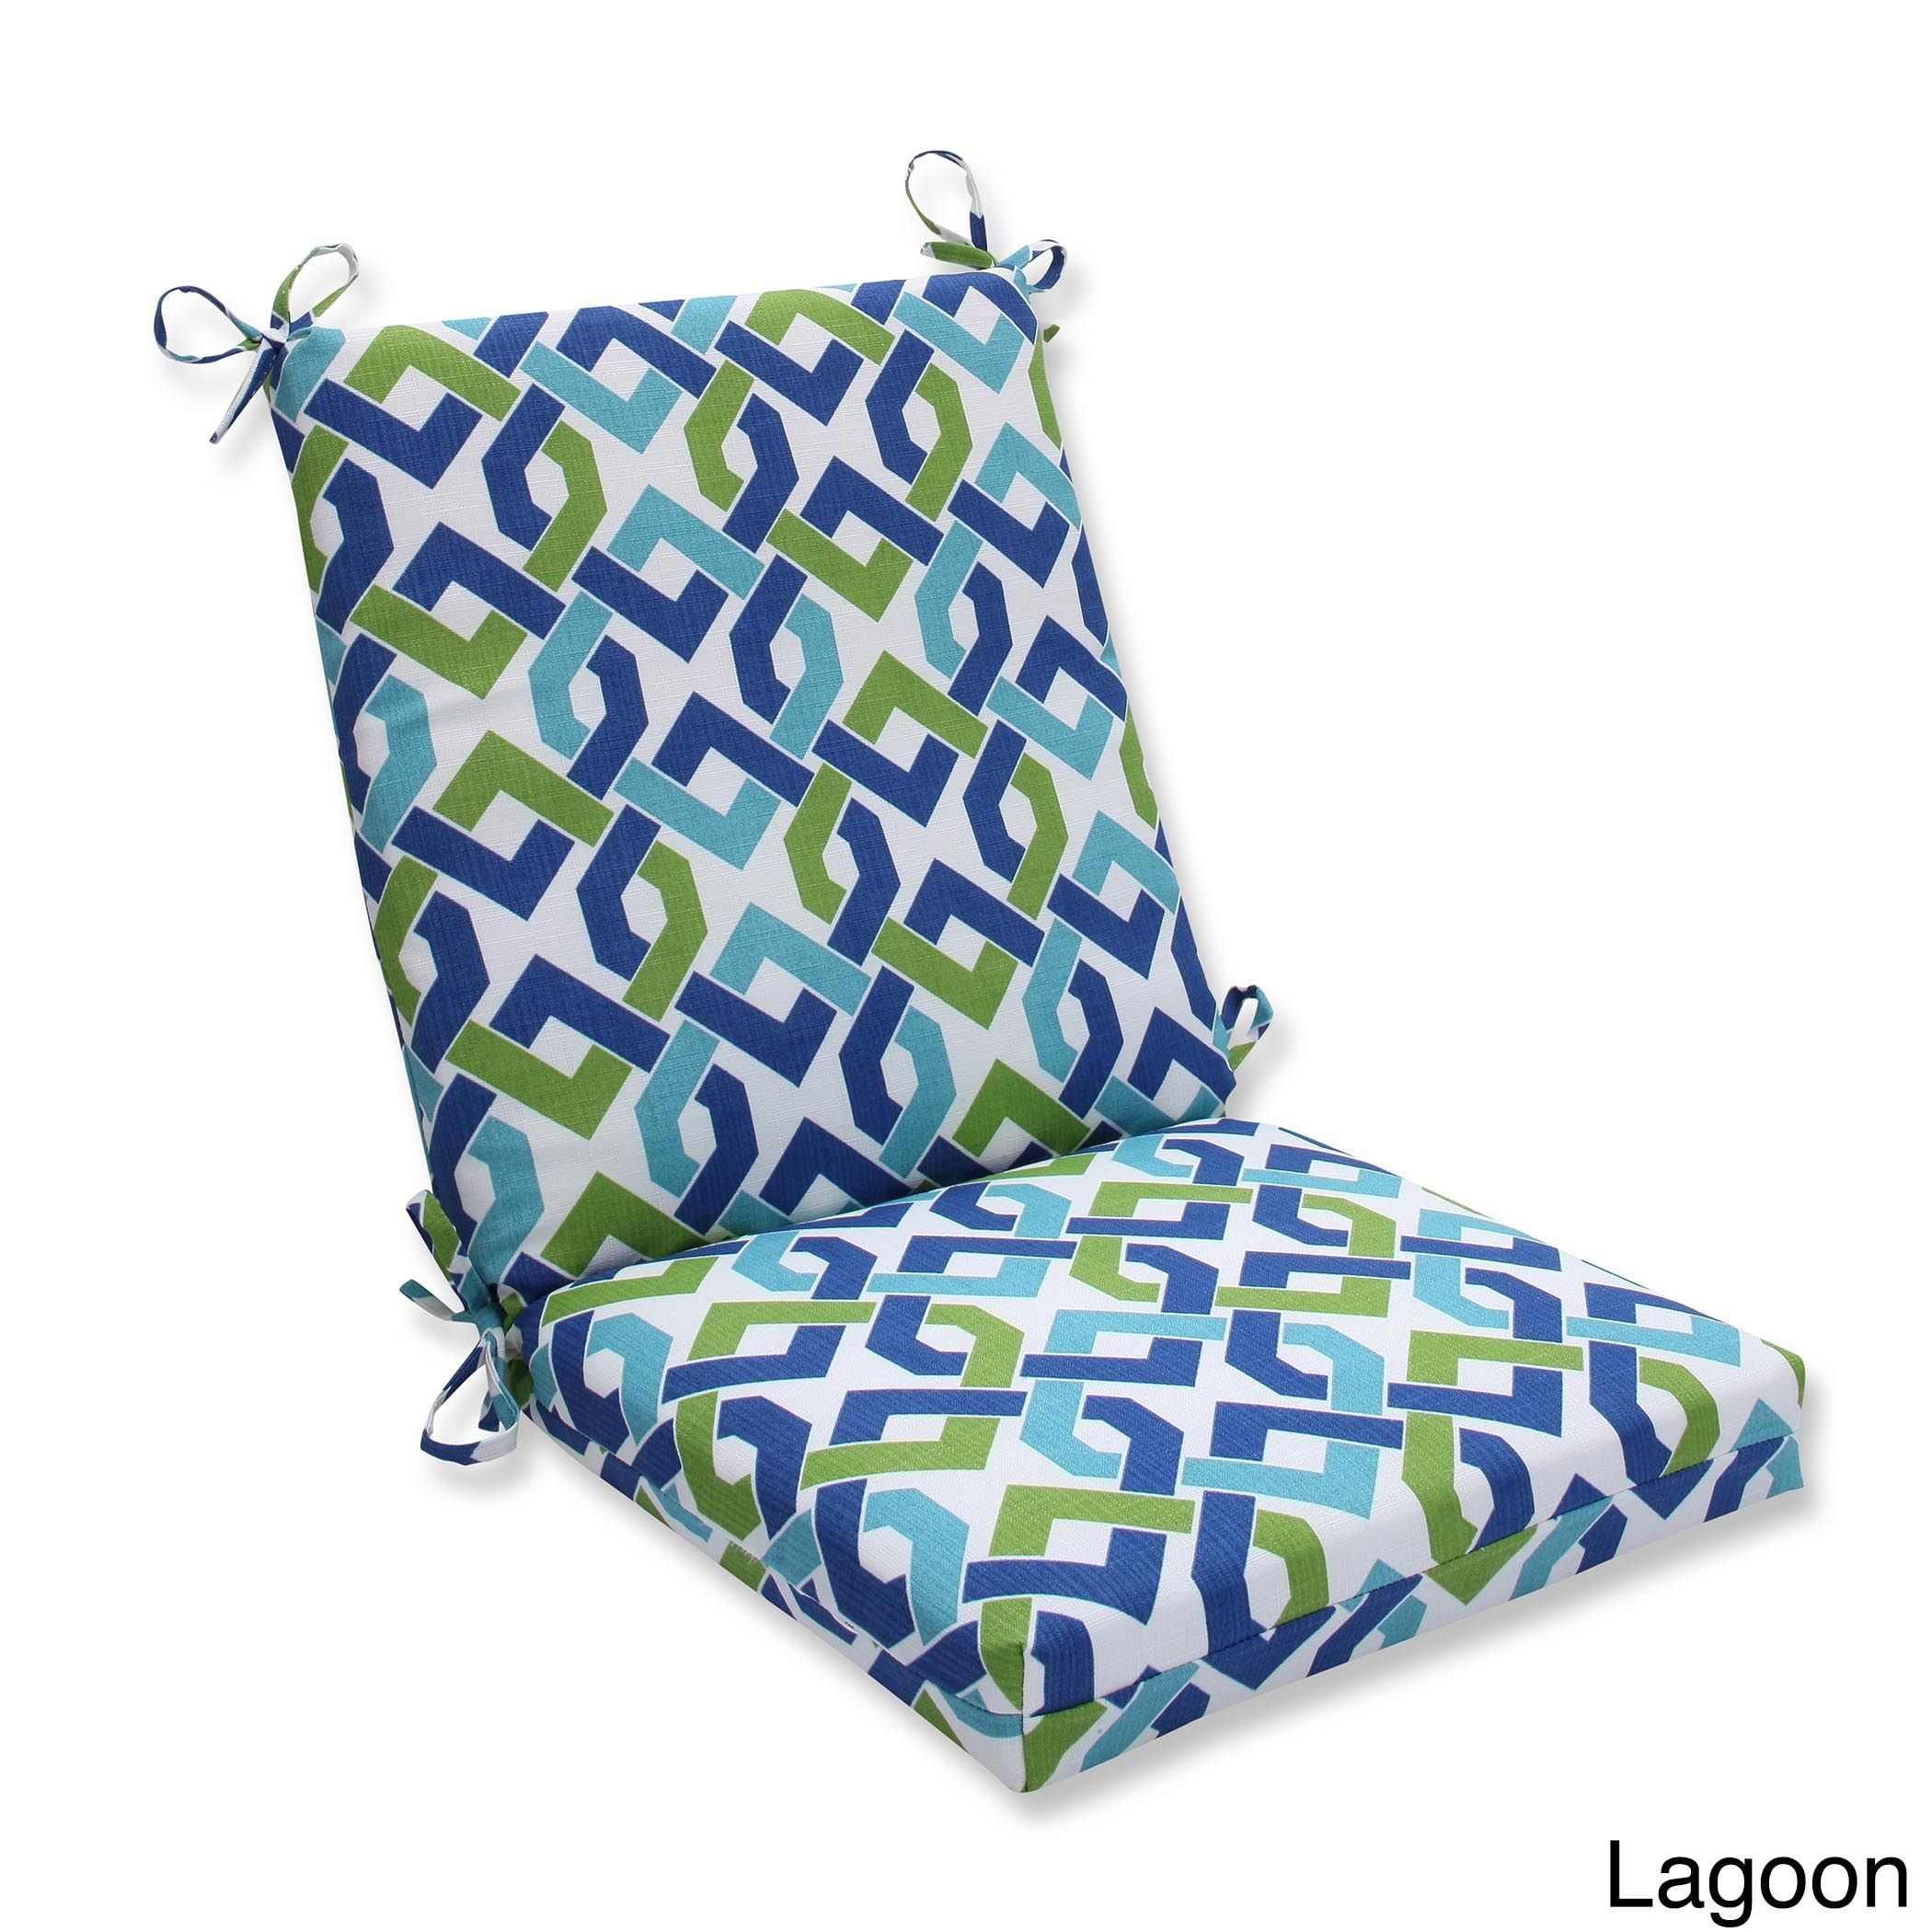 Pillow Perfect Outdoor/ Indoor Reiser Squared Corners Chair Cushion (Lagoon), White (Polyester), Outdoor Cushion